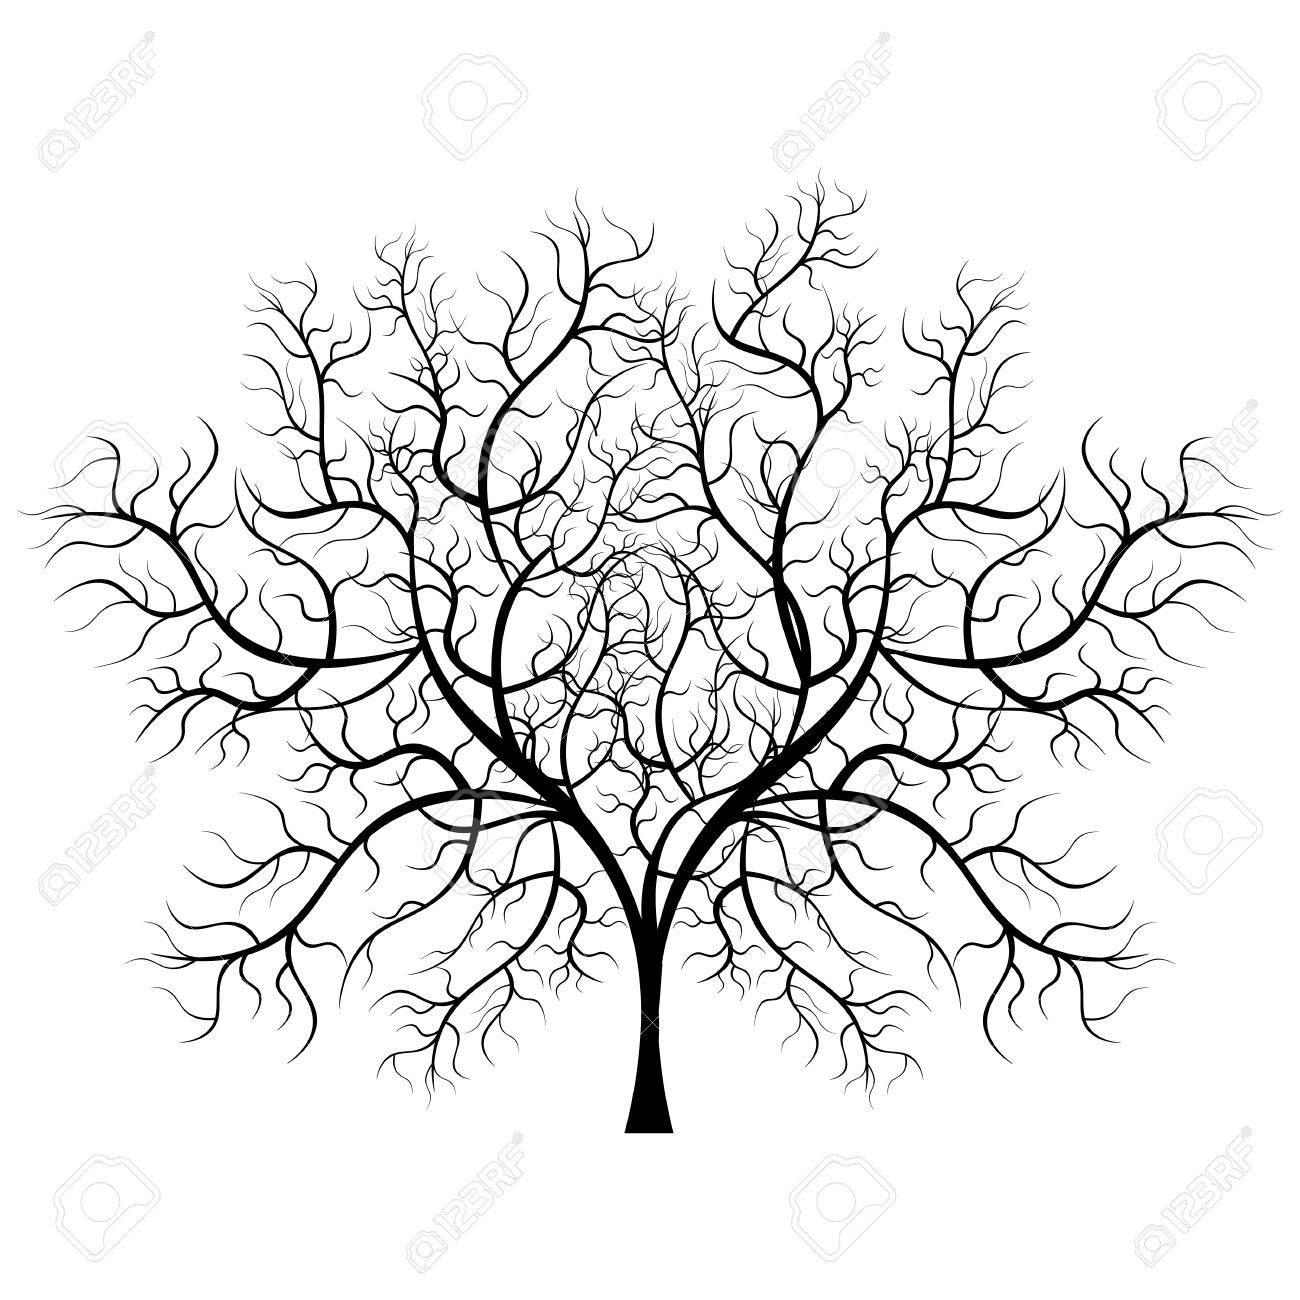 c3c68198fda Bright pretty color vector graphic illustration of one growing bare black  tree on white background Stock